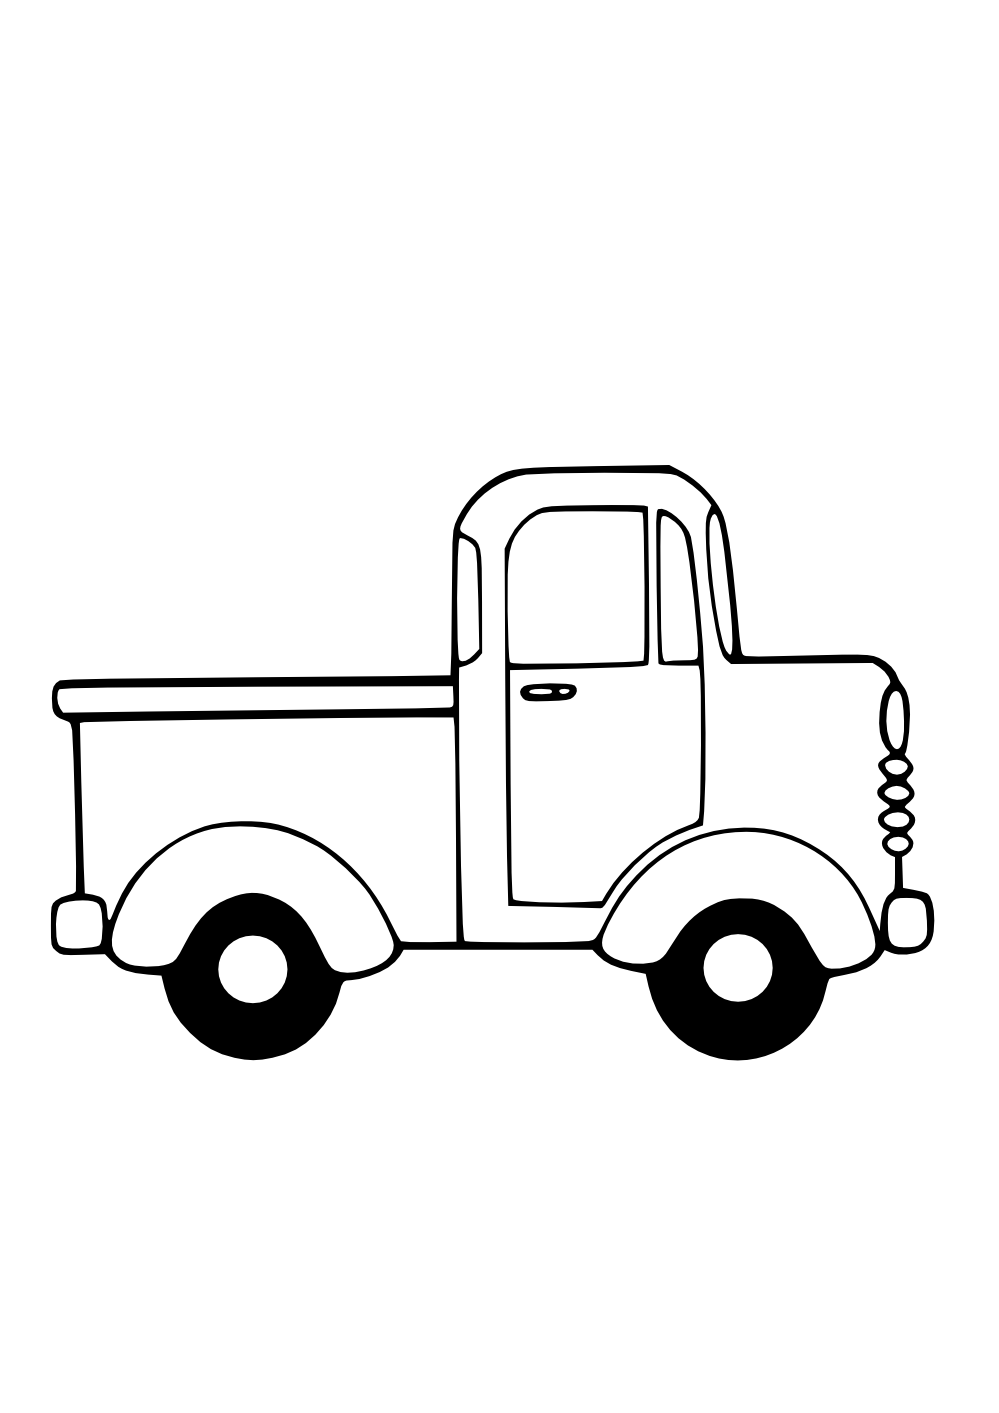 clipart black and white download Truck panda free images. Bullet clipart black and white